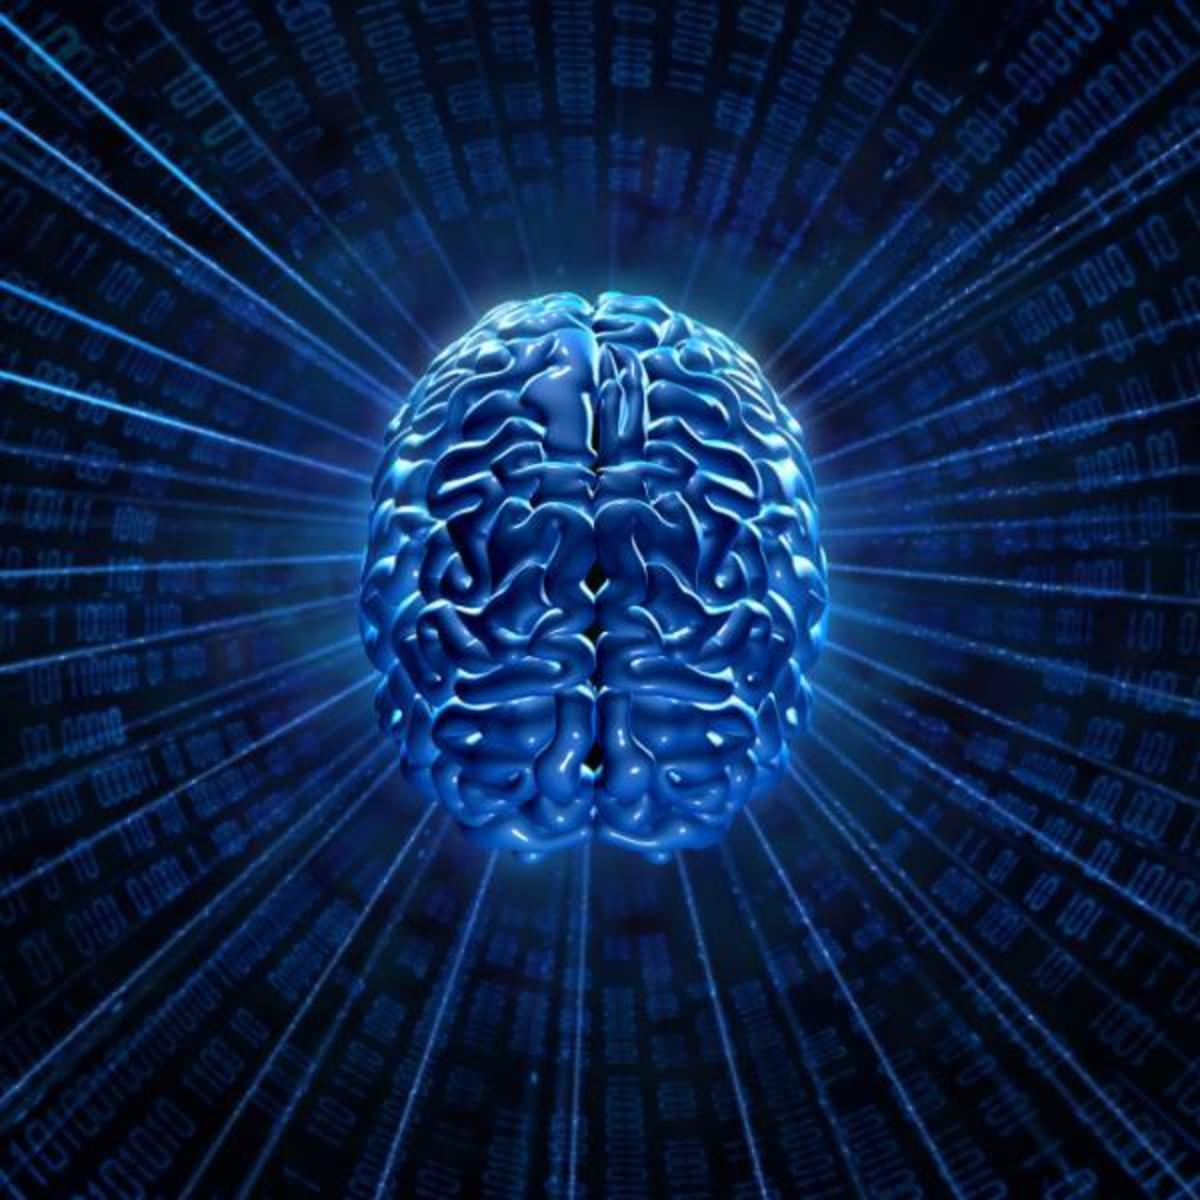 Scientists are studying the wiring of the human brain. Circuit tracing method allows studying of incoming and outgoing signals from any two brain centers; they can look aat up to four links in a circuit. They see that as their technological innovatio